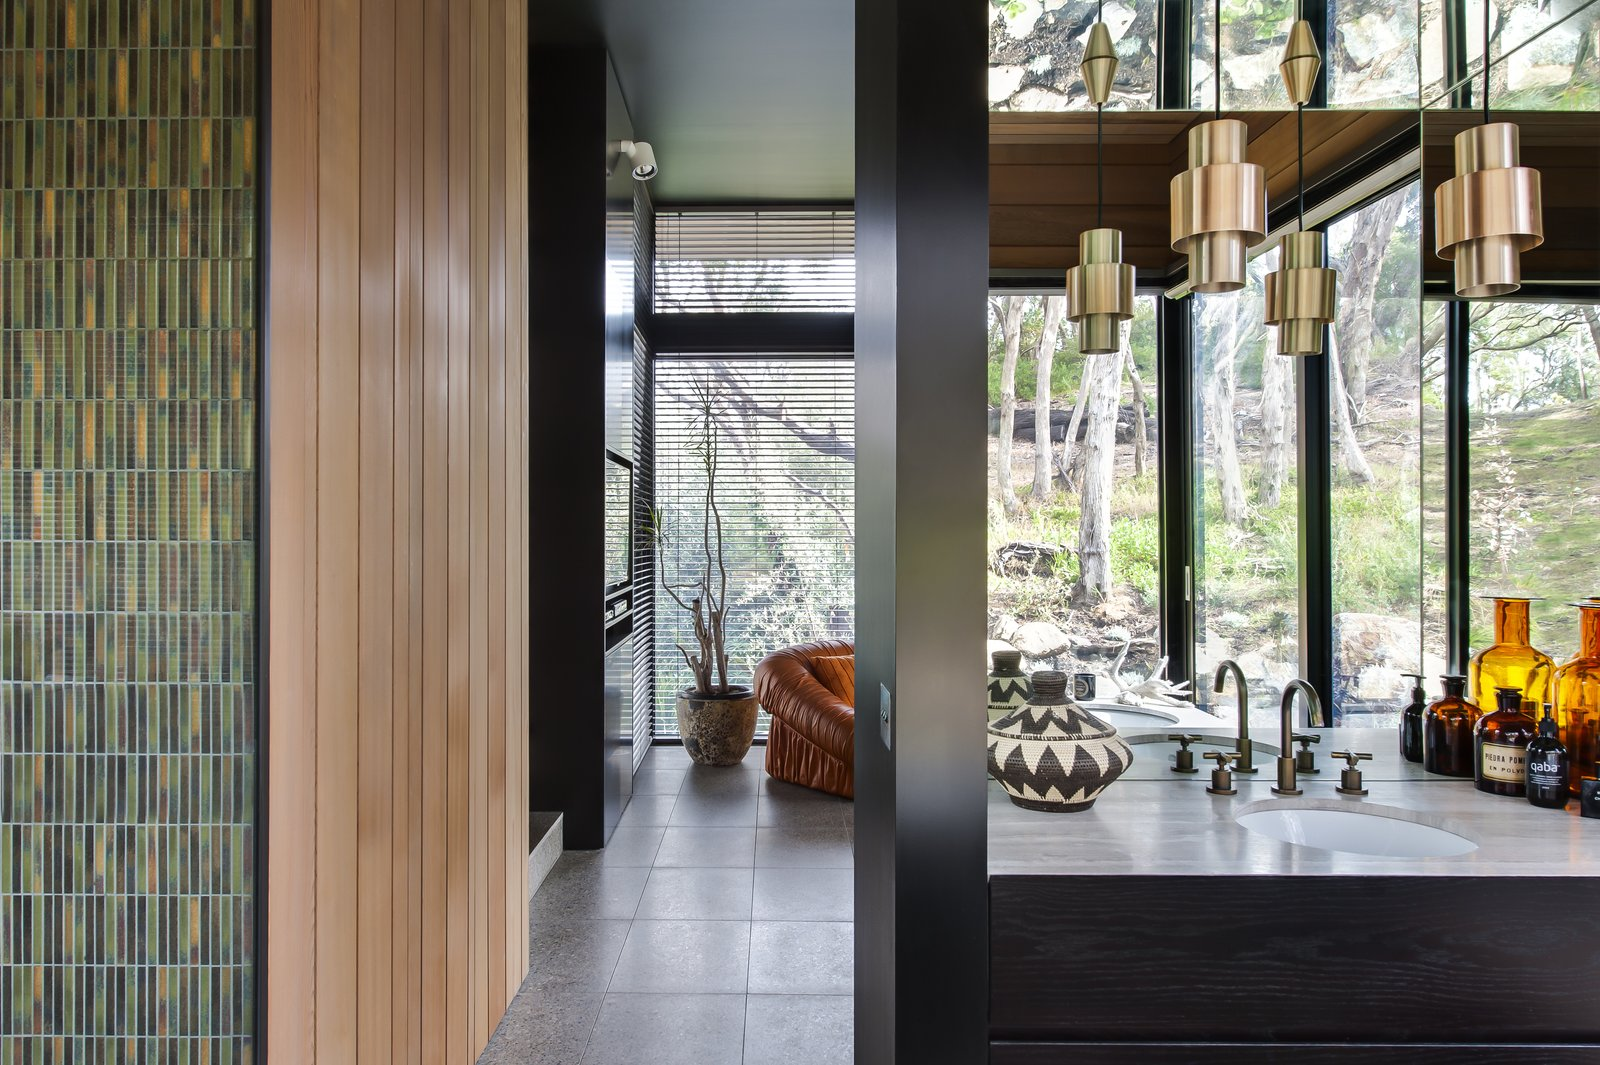 Bath Room, Drop In Sink, and Pendant Lighting  Photo 6 of 7 in Unexpected Bursts of Color Enliven a Midcentury Pad in Australia